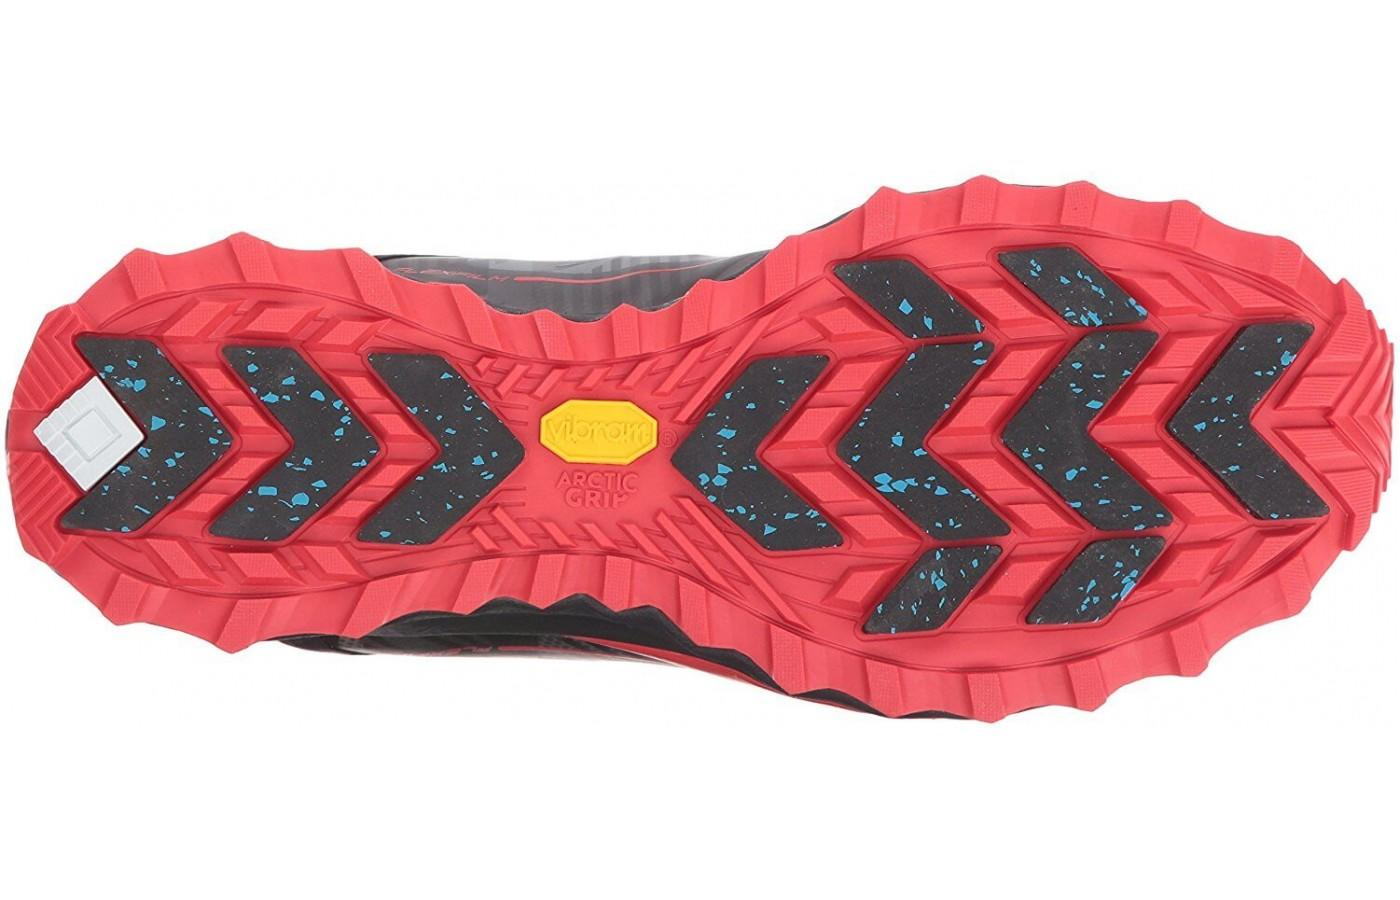 The outsole of the Razor Ice+ provides traction on ice